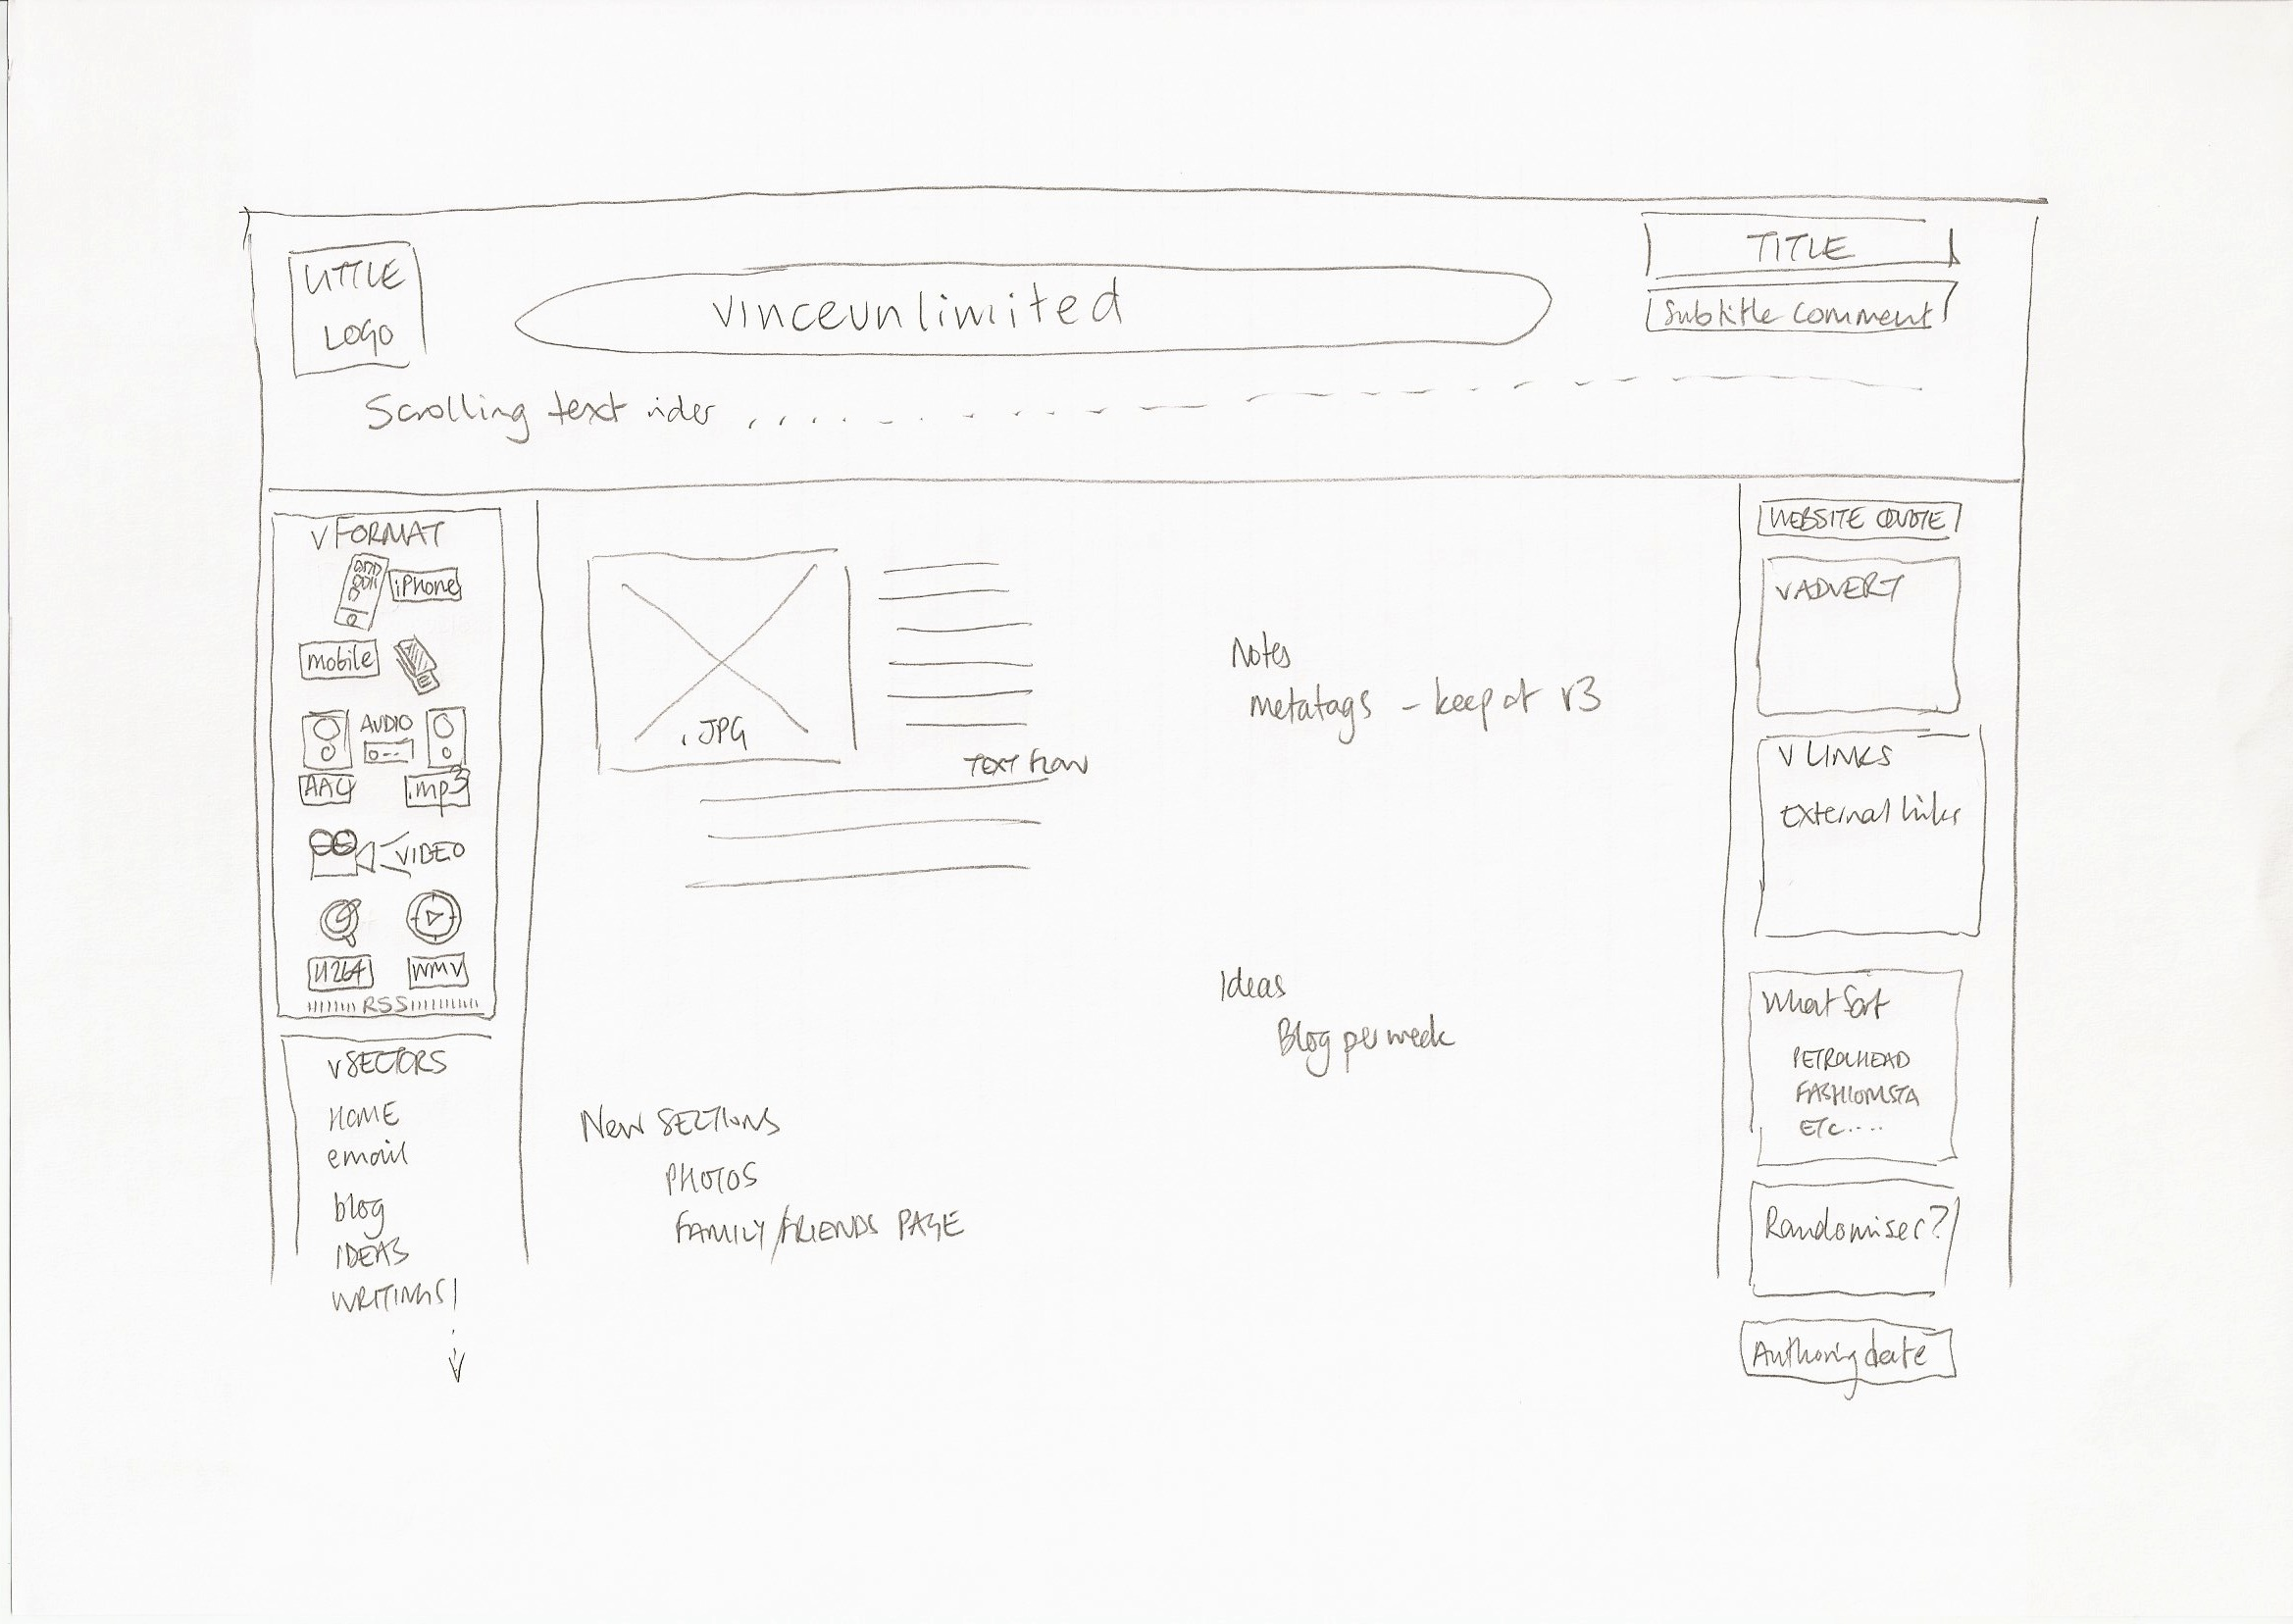 Original sketch laying out version 3 of the vinceunlimited website